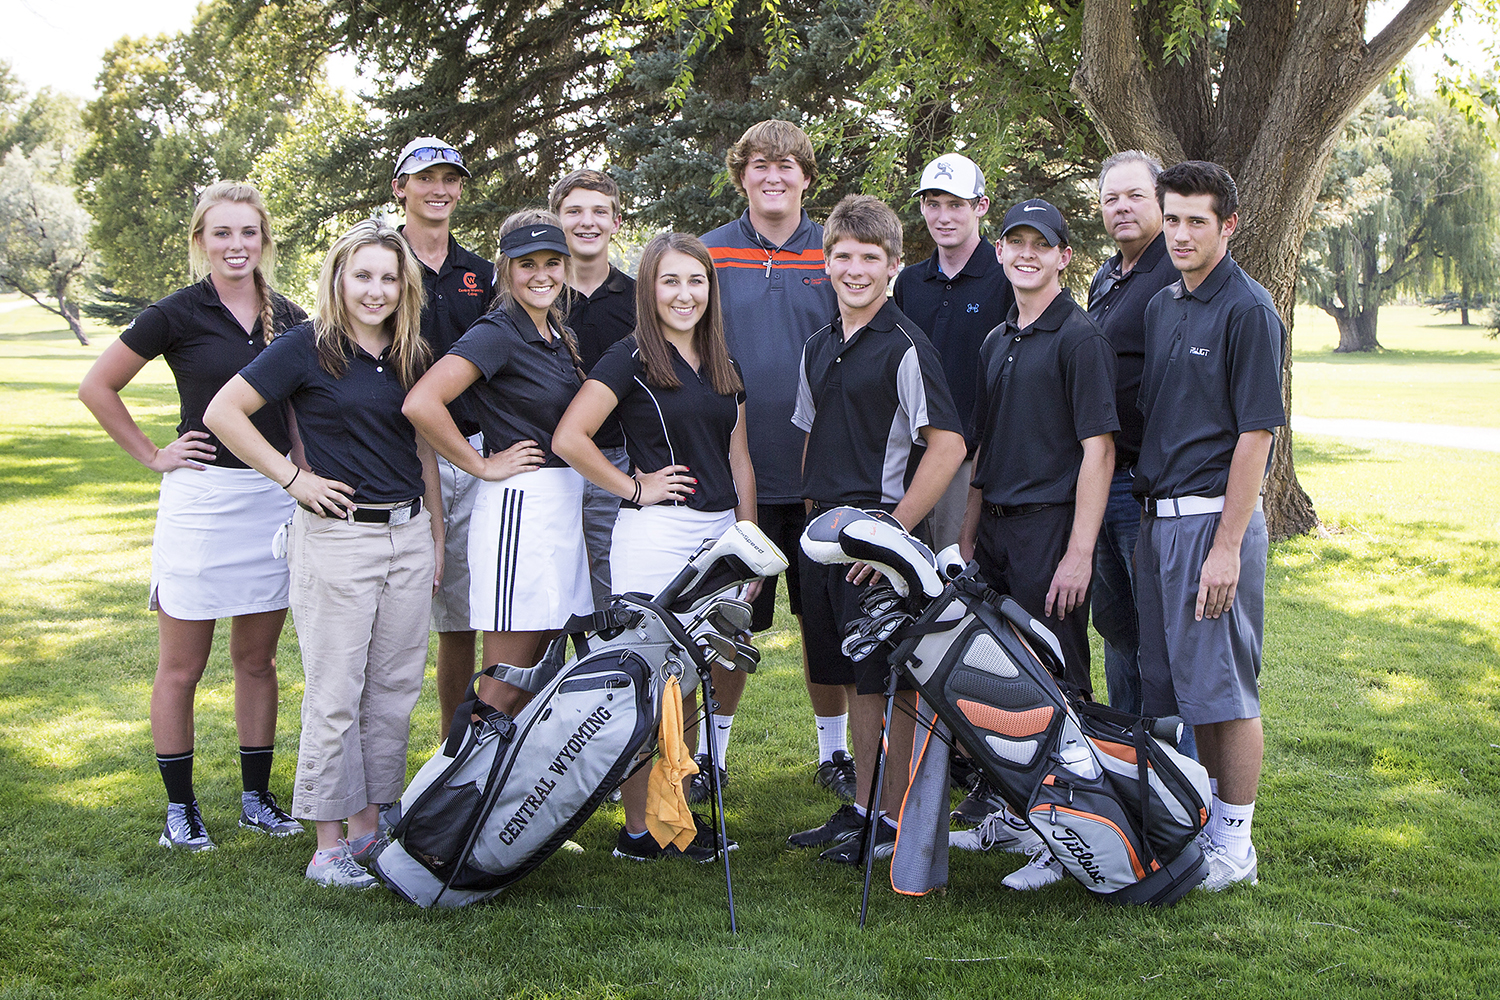 central wyoming college's men and women's team golf photo